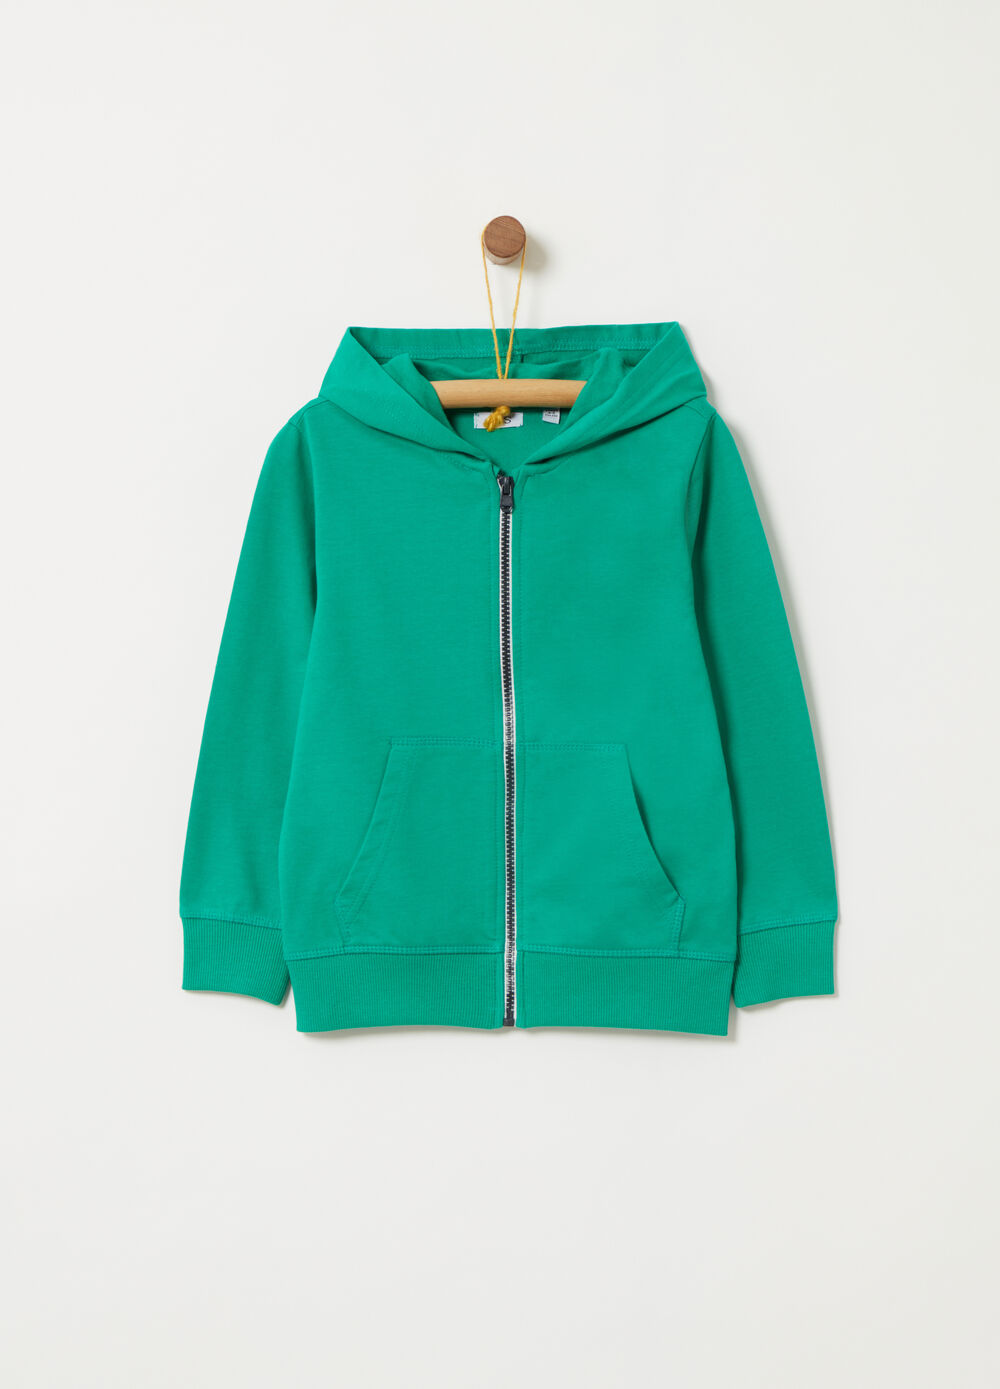 Lightweight sweatshirt with functional pocket